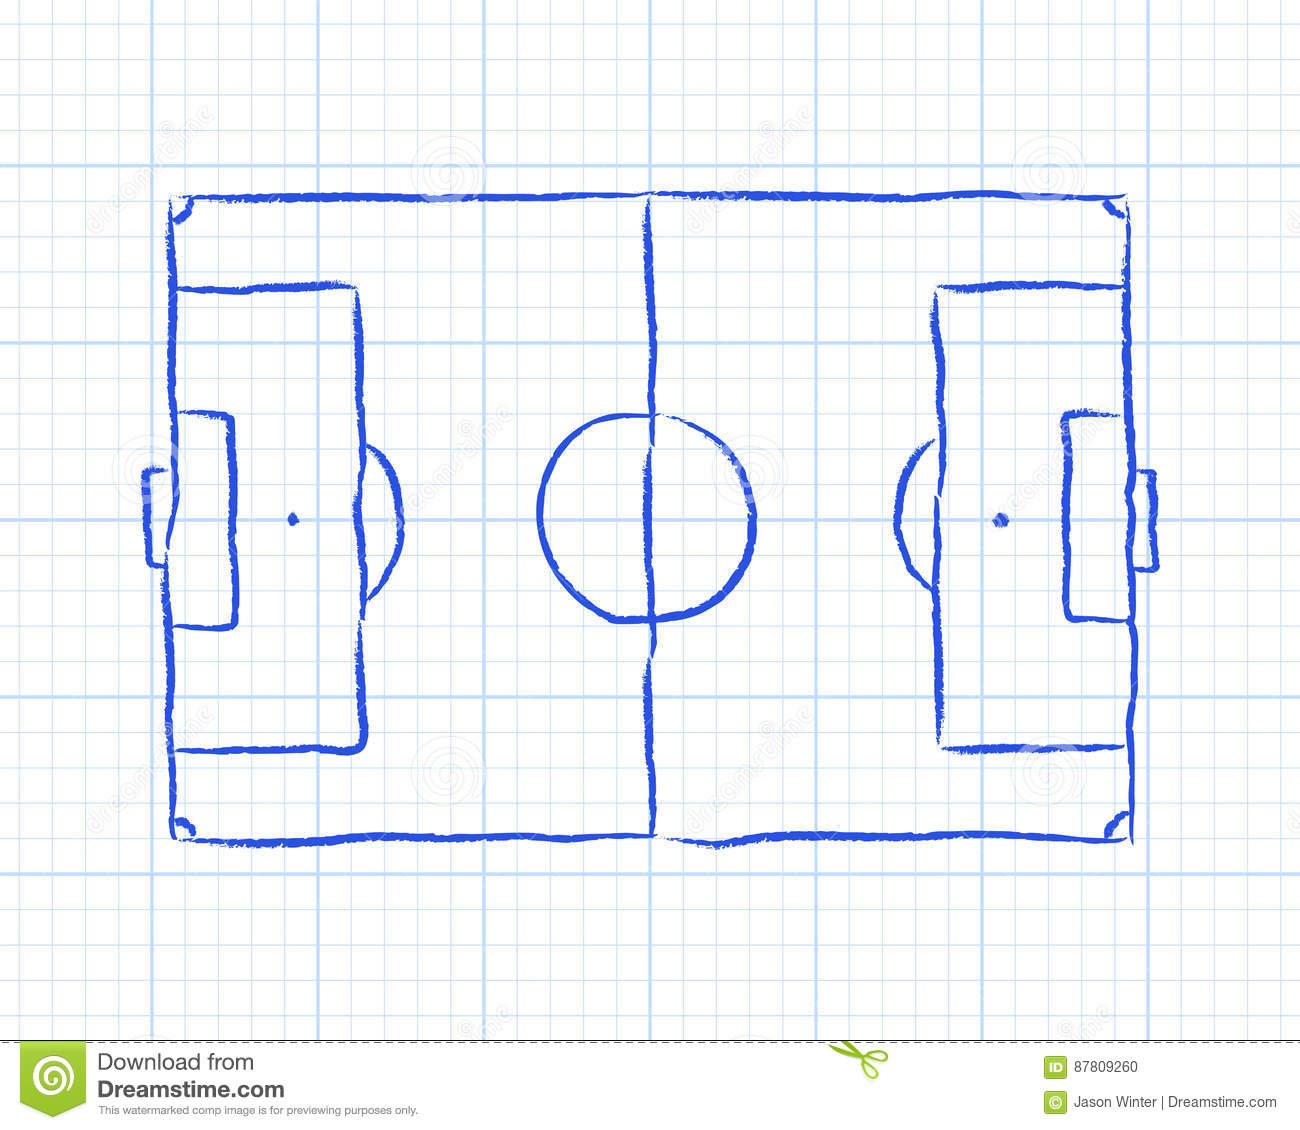 soccer pitch graph paper football diagram background 87809260 soccer pitch graph paper stock vector illustration of sport 87809260